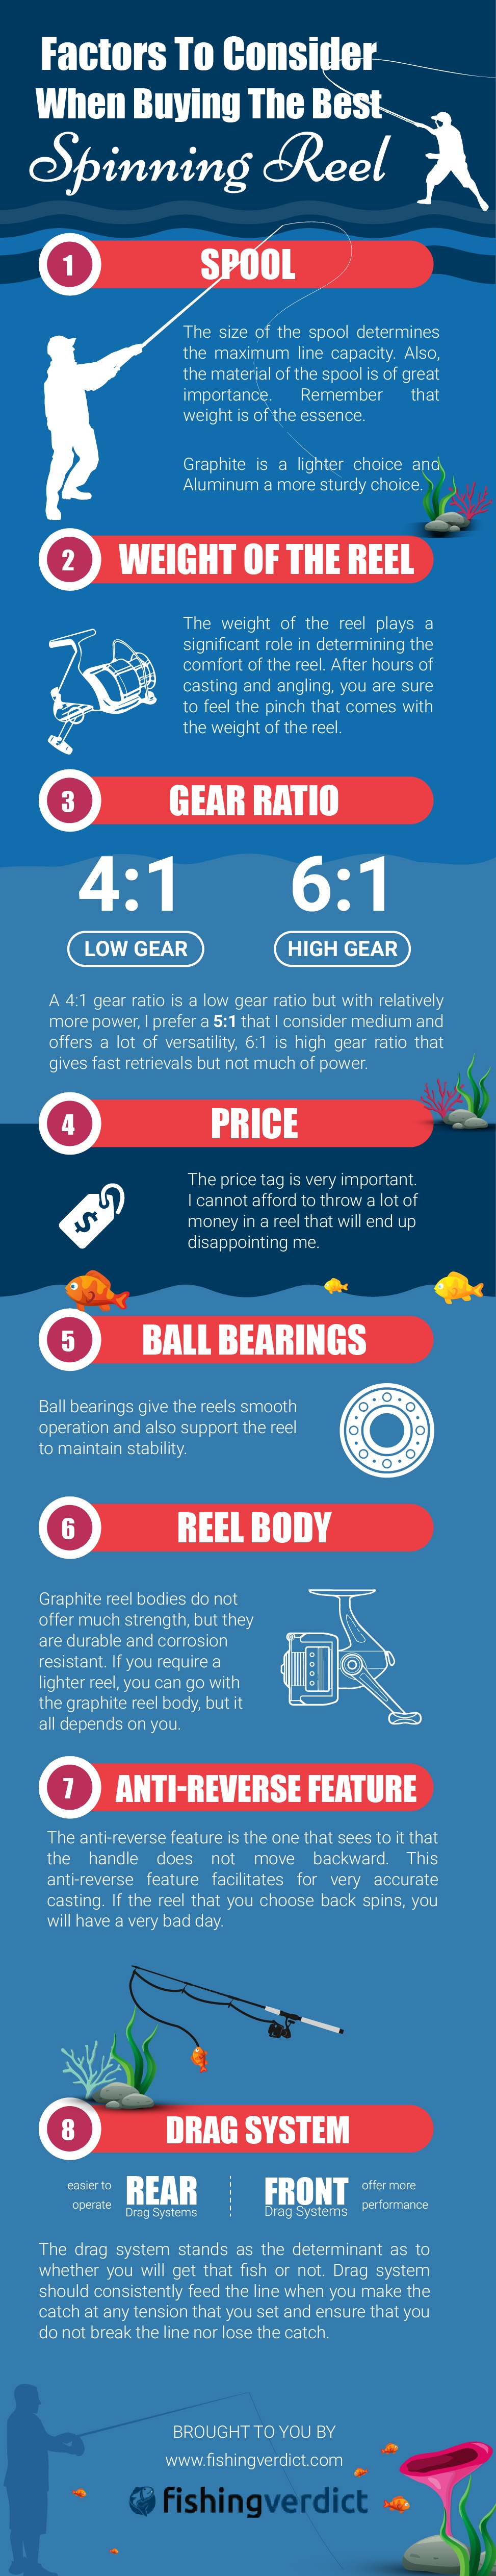 factors-to-consider-when-buying-the-best-spinning-reel-02